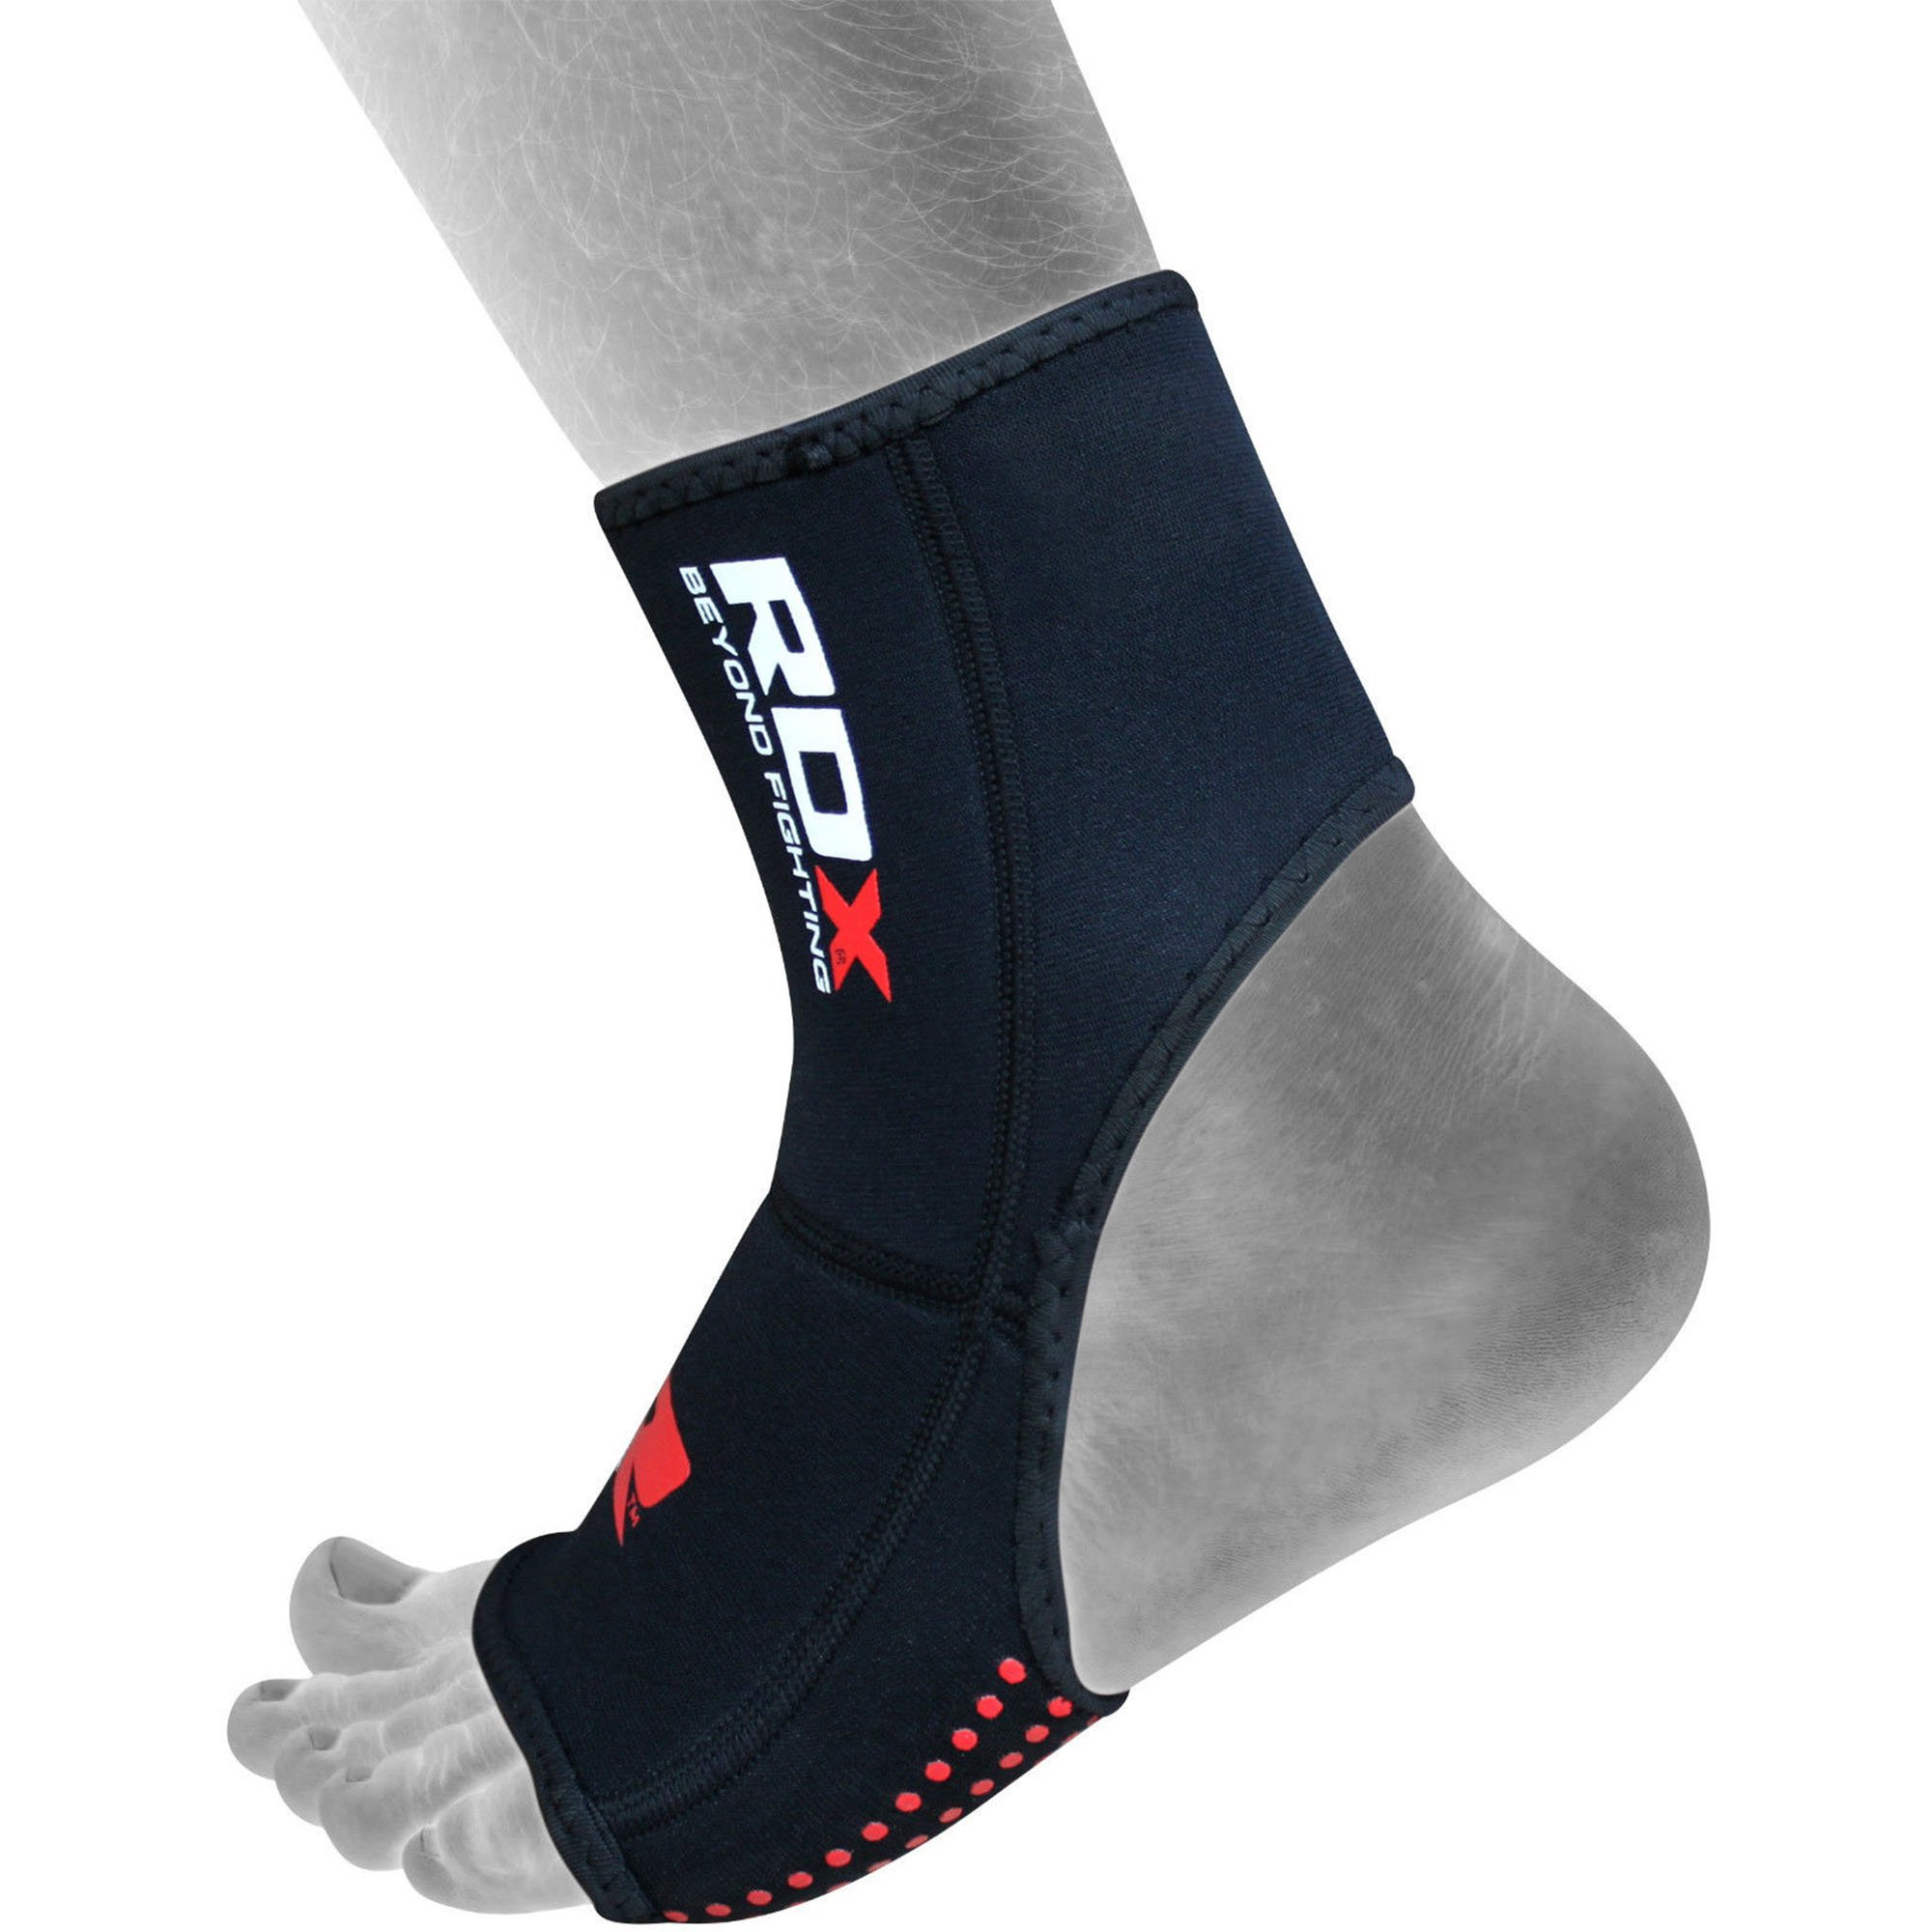 RDX NEOPRENE ANKLE SUPPORT BLACK-M